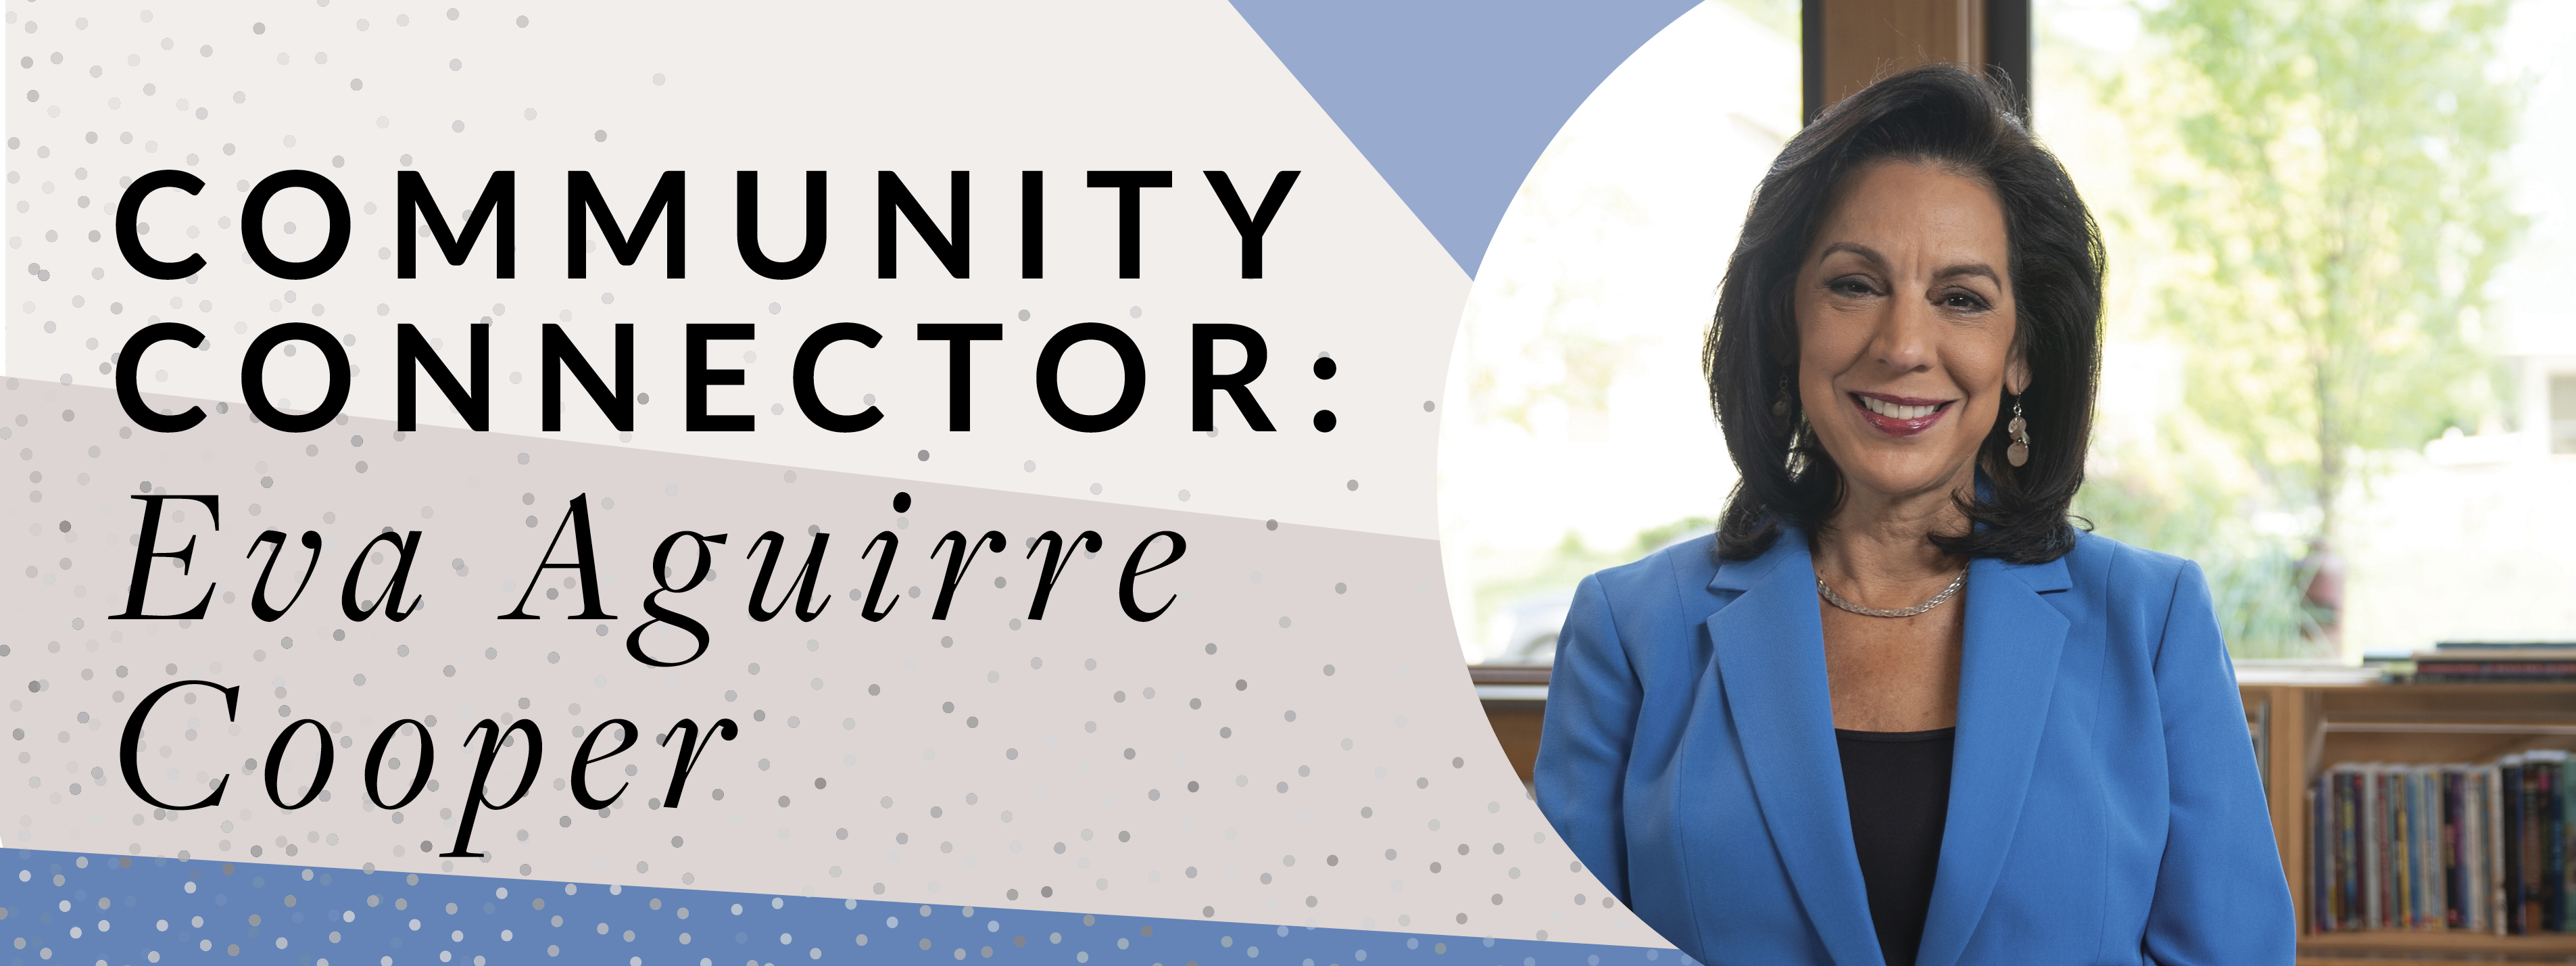 Community Connector: Eva Aguirre Cooper